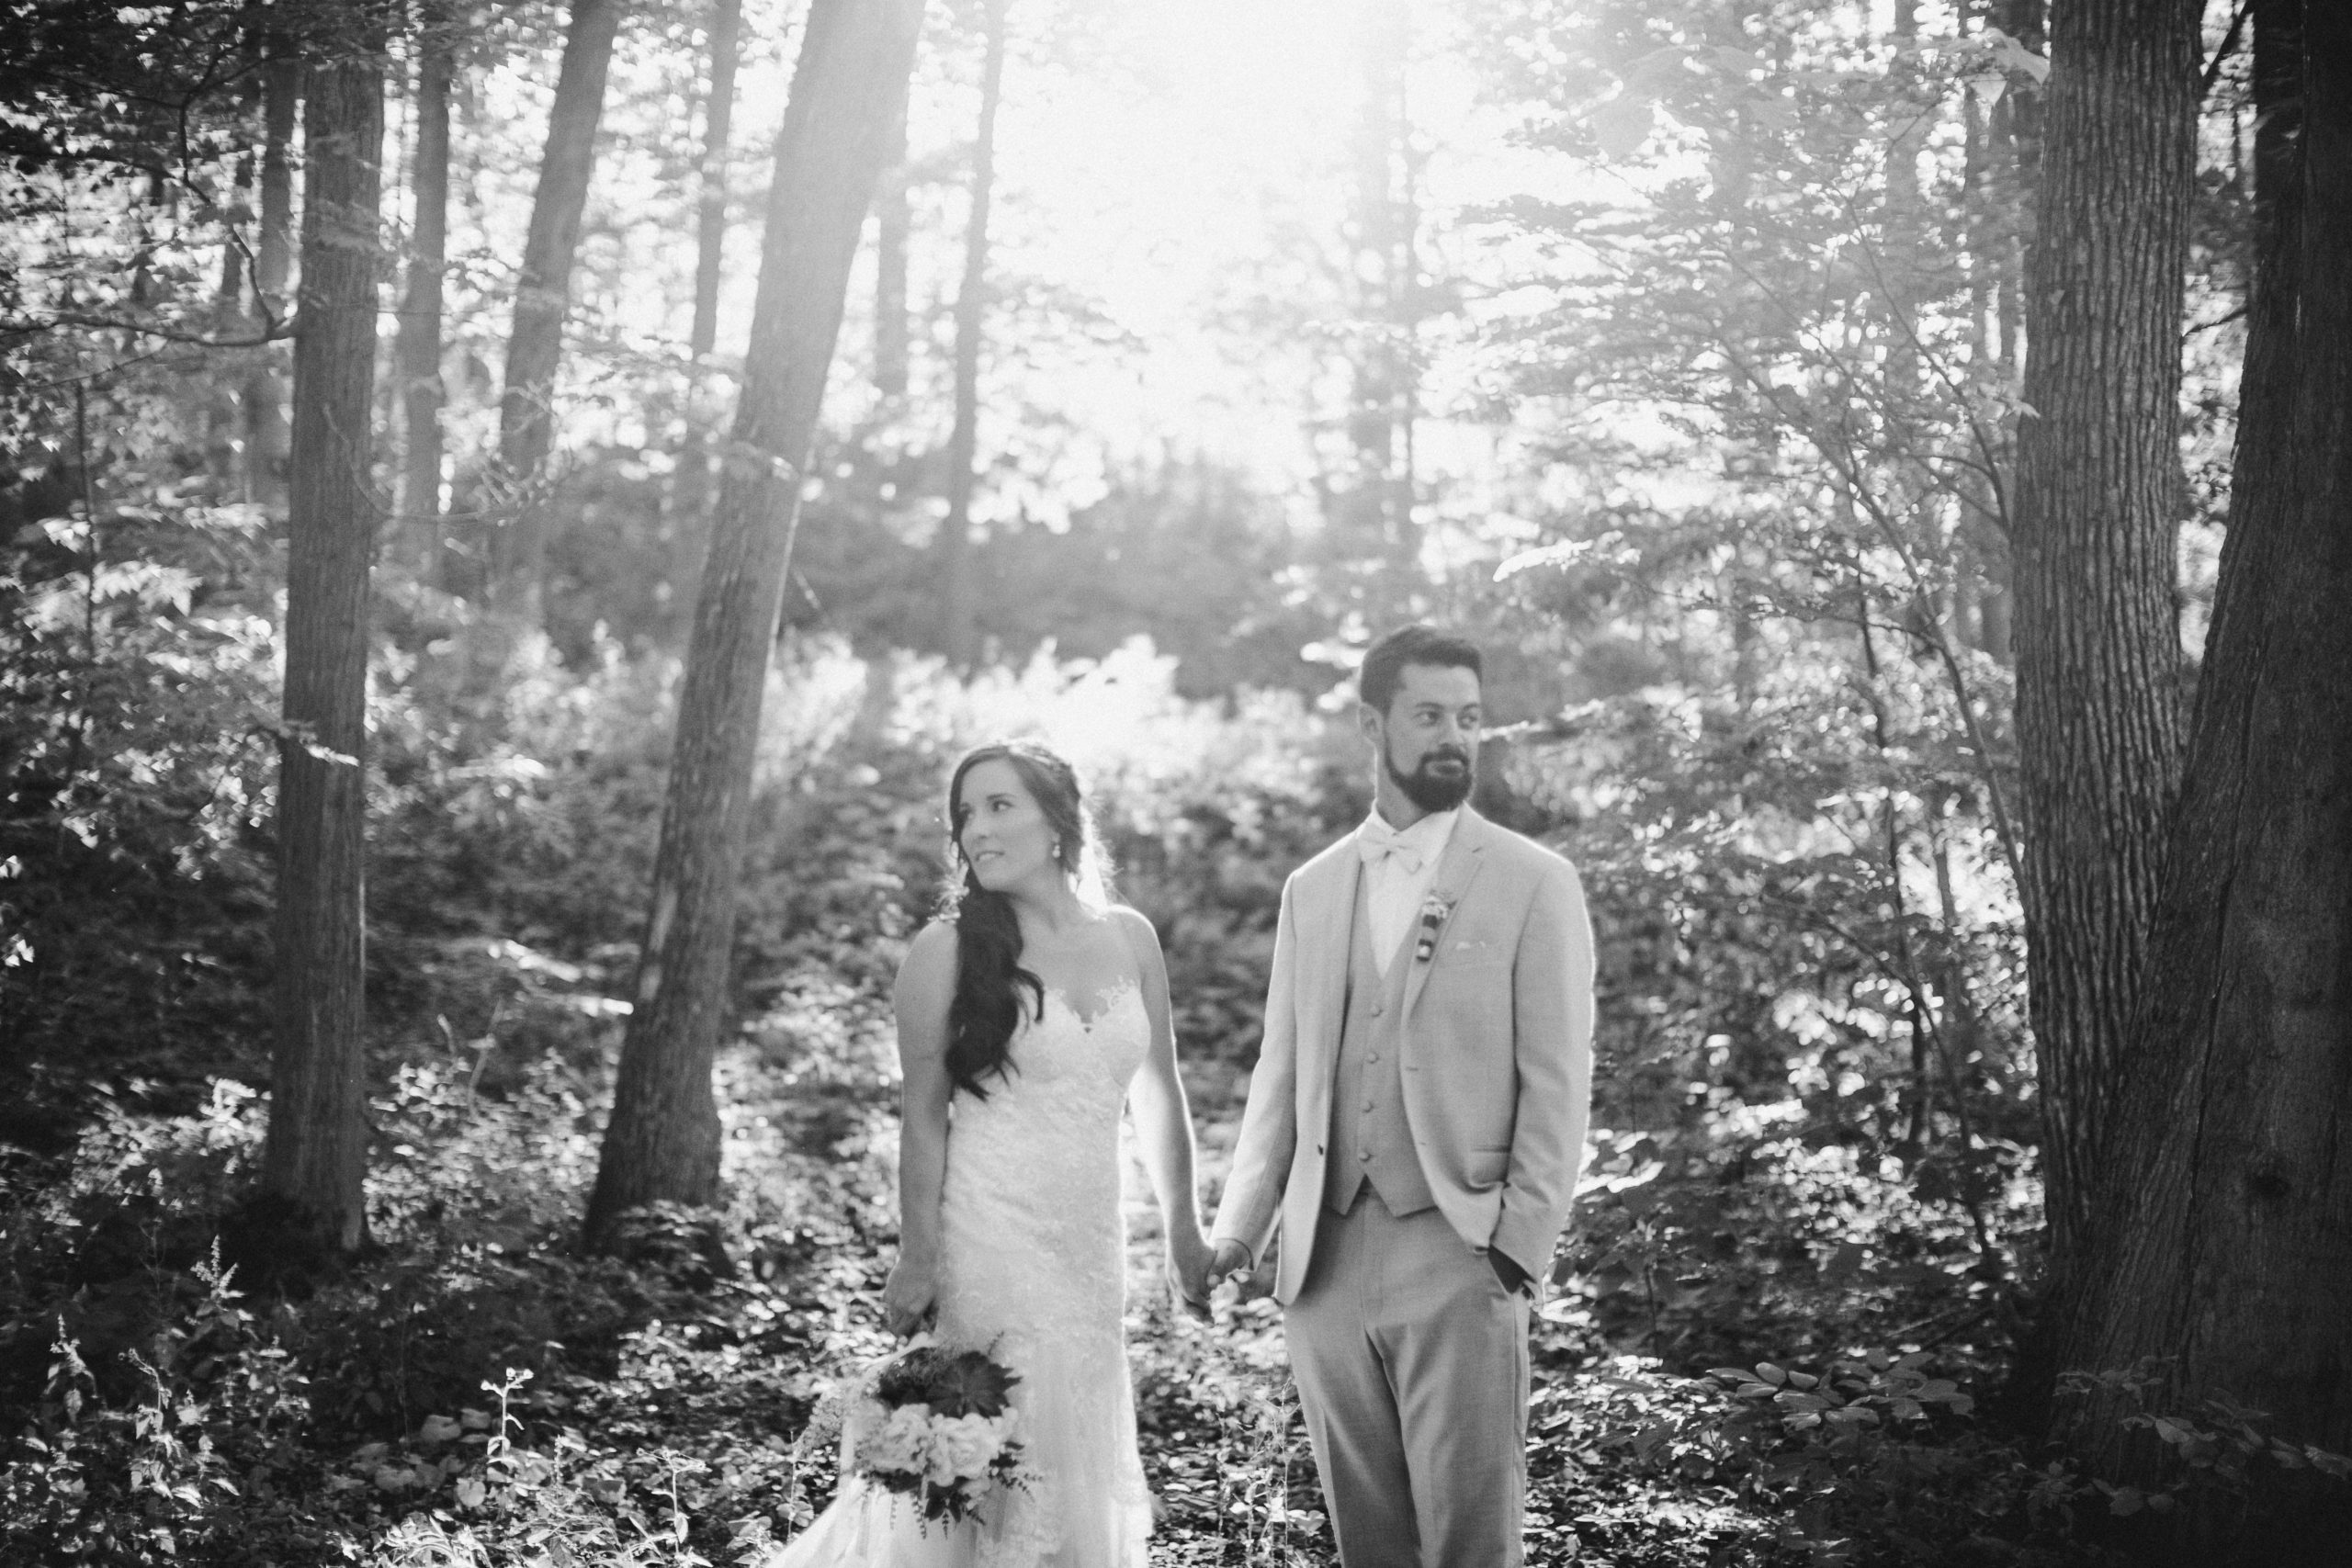 Balls Falls Forest Wedding Venue Outdoor Ceremony